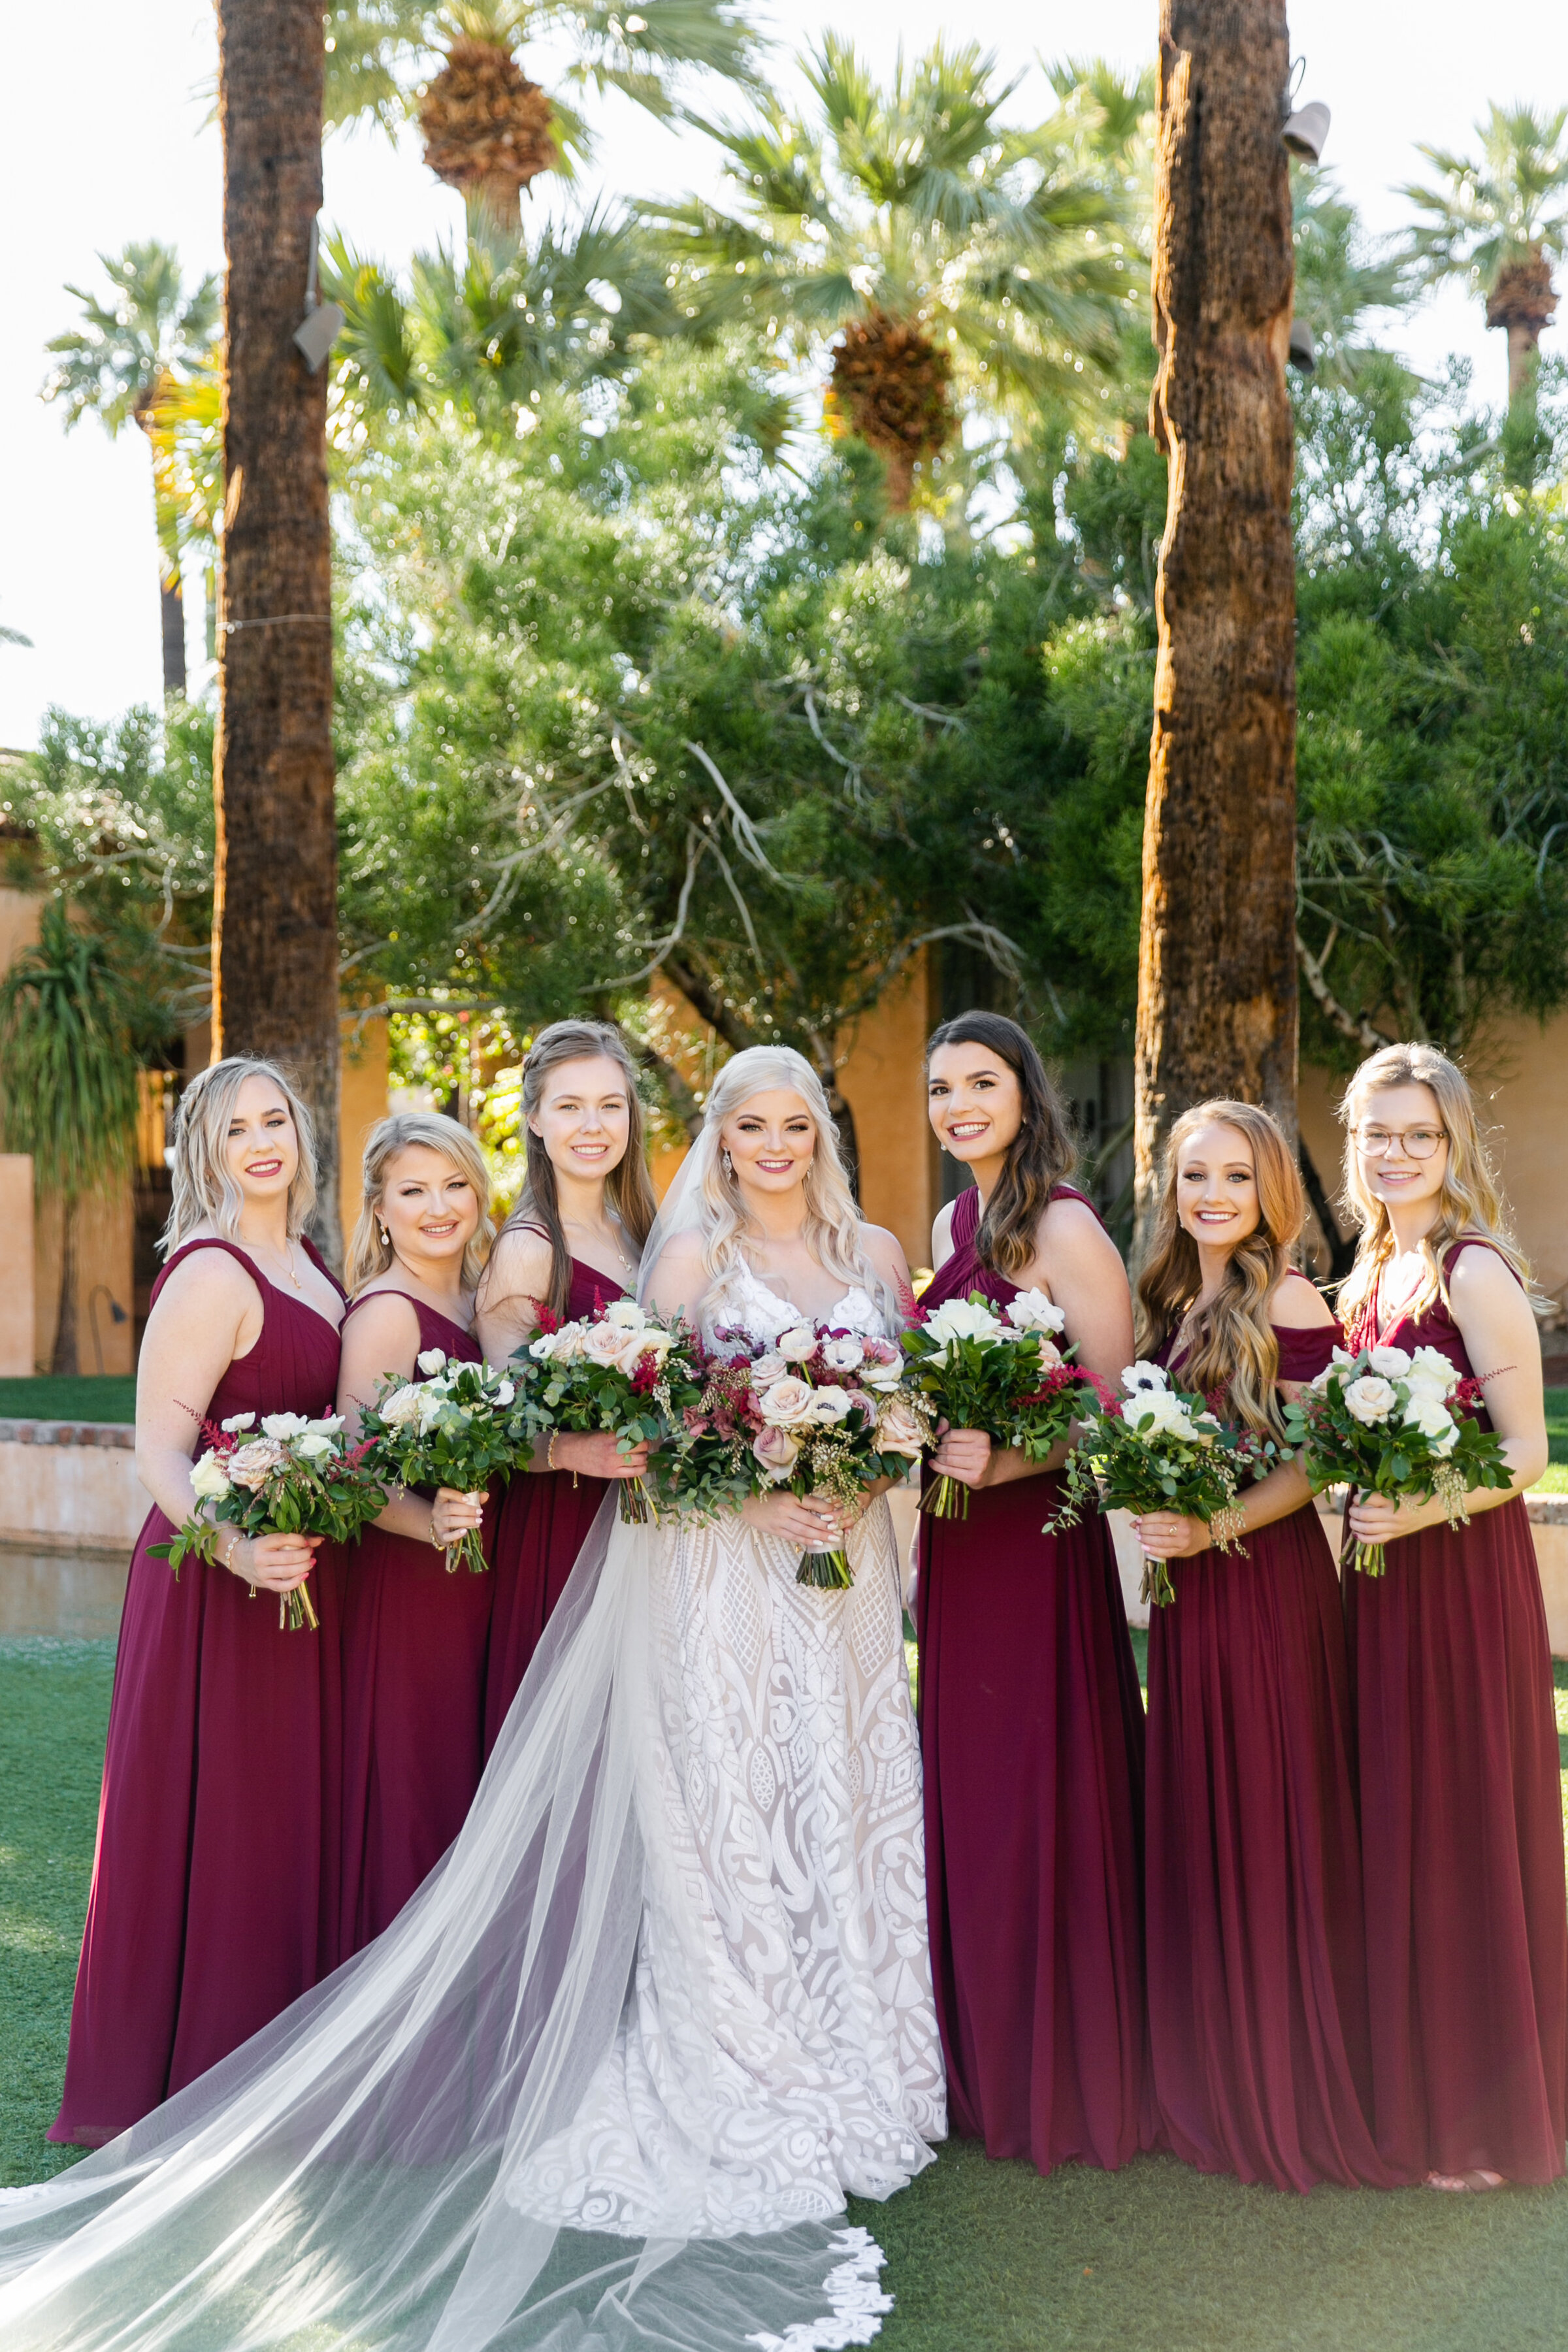 Karlie Colleen Photography - The Royal Palms Wedding - Some Like It Classic - Alex & Sam-203